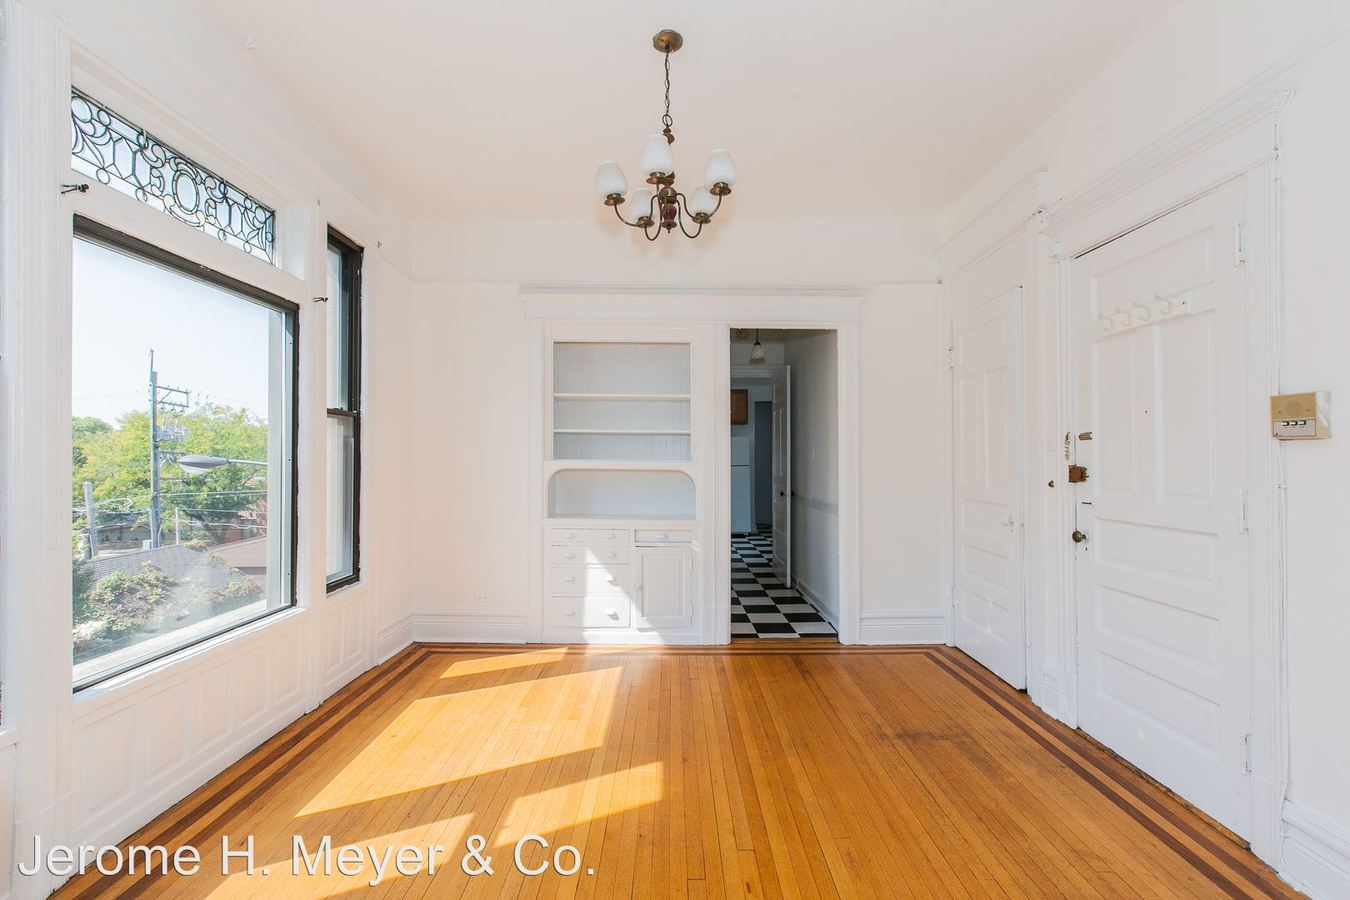 2 Bedrooms 1 Bathroom Apartment for rent at 530-40 W. Armitage 2000 N. Mohawk in Chicago, IL